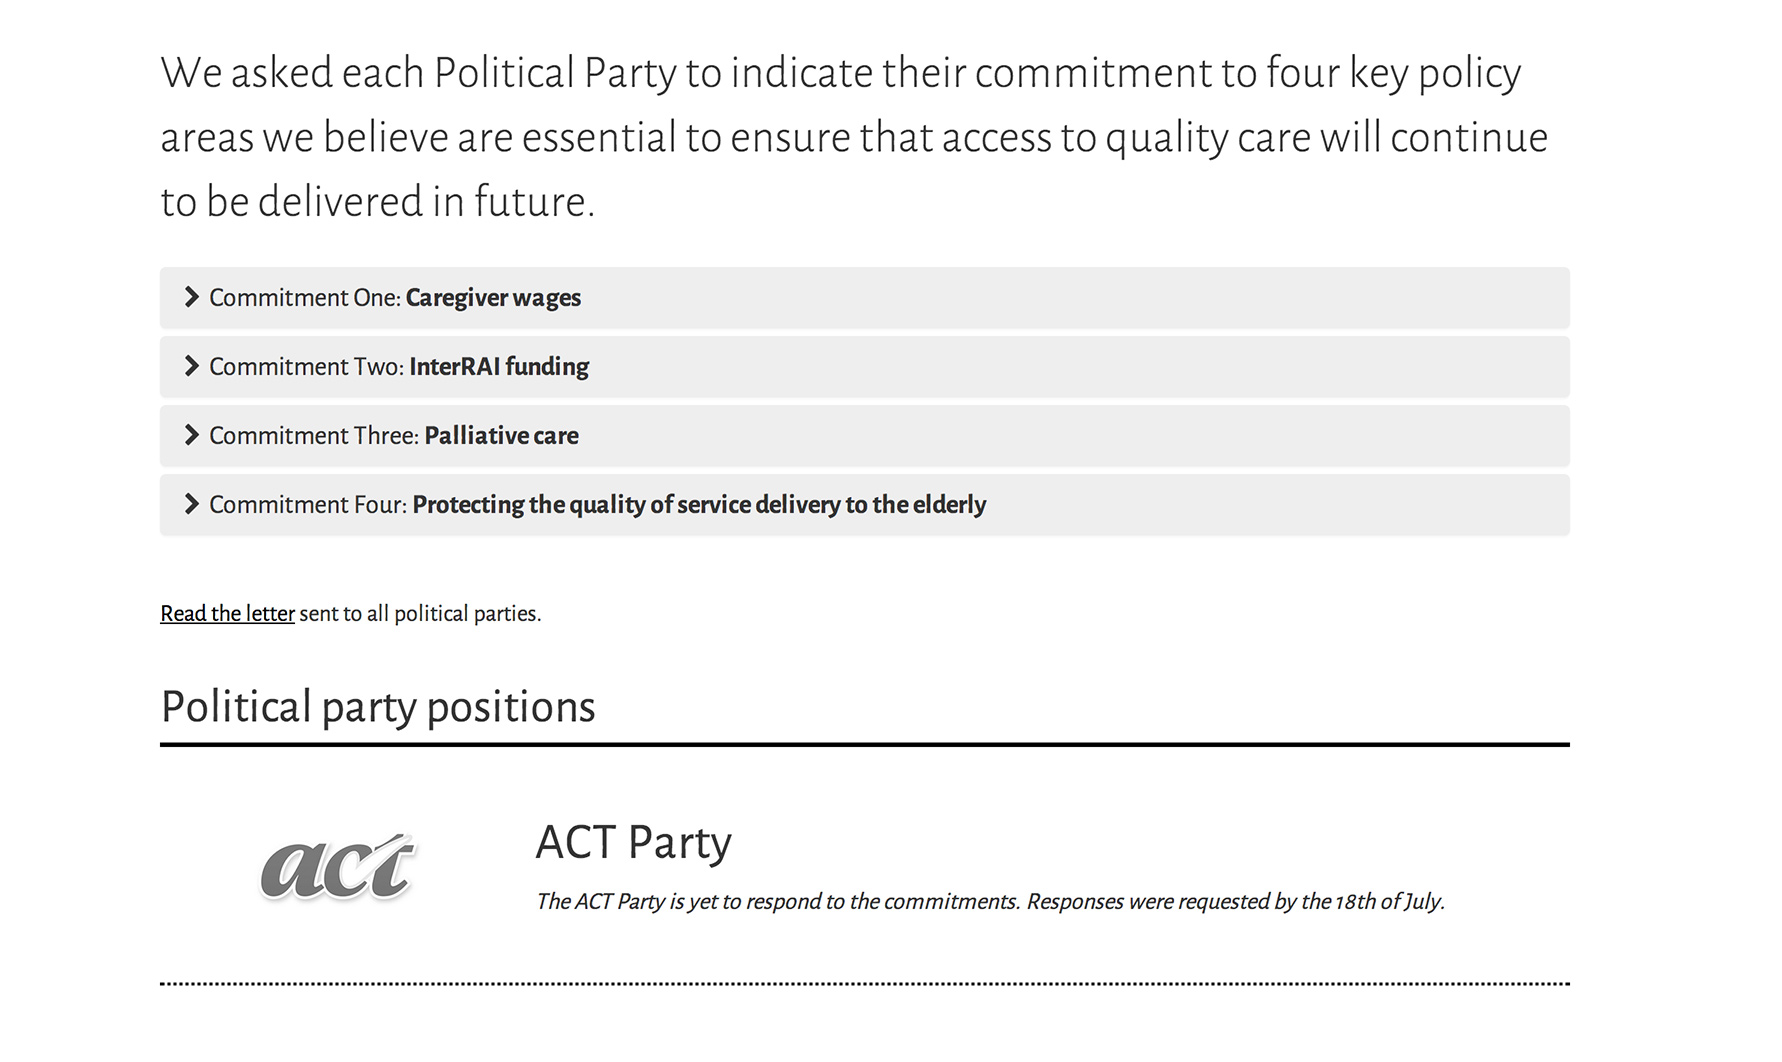 Political party responses page